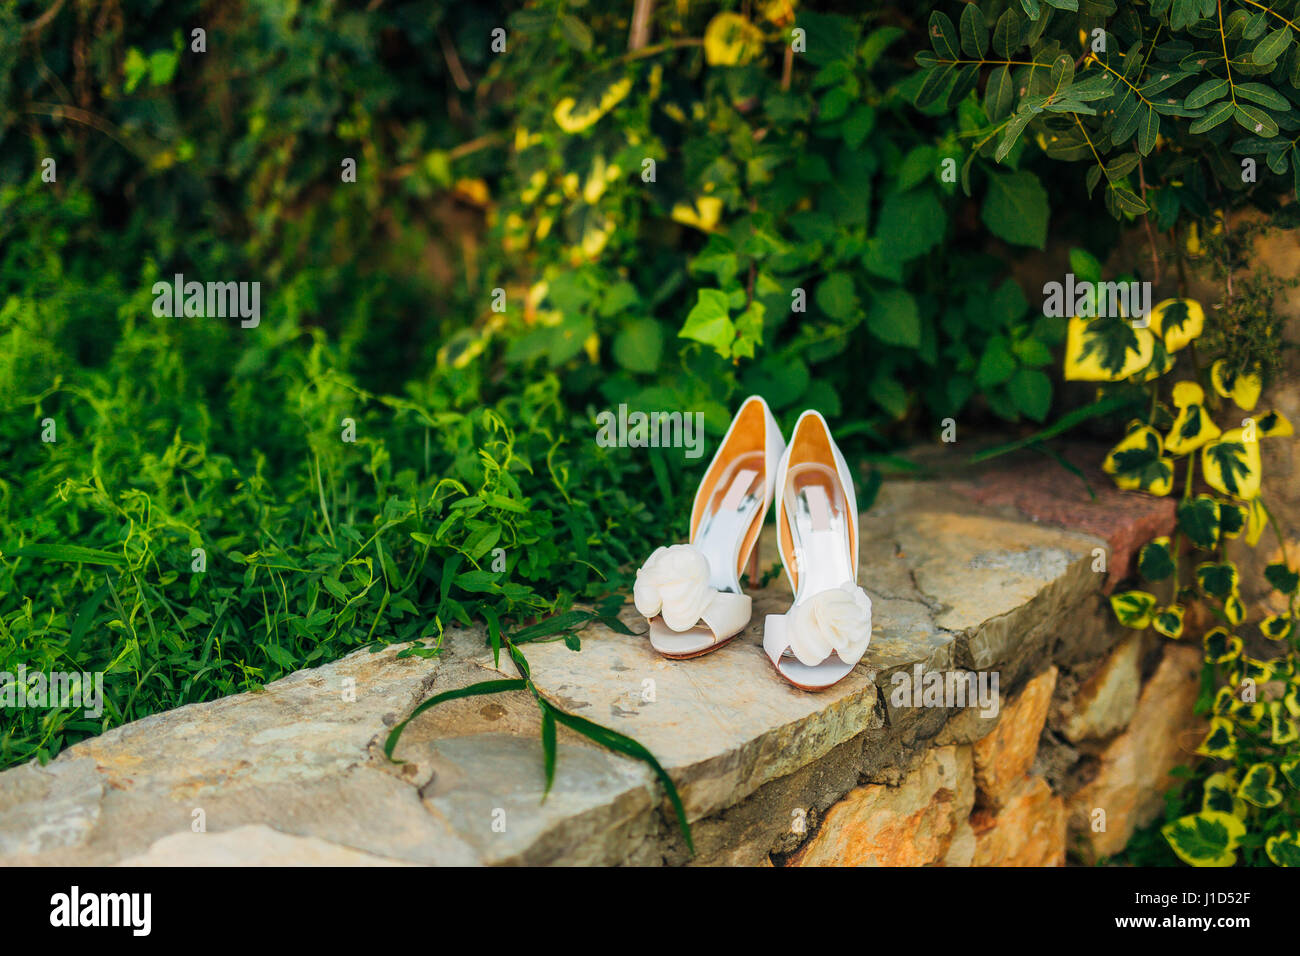 Wedding shoes on a stone border against a background of green leaves Stock Photo